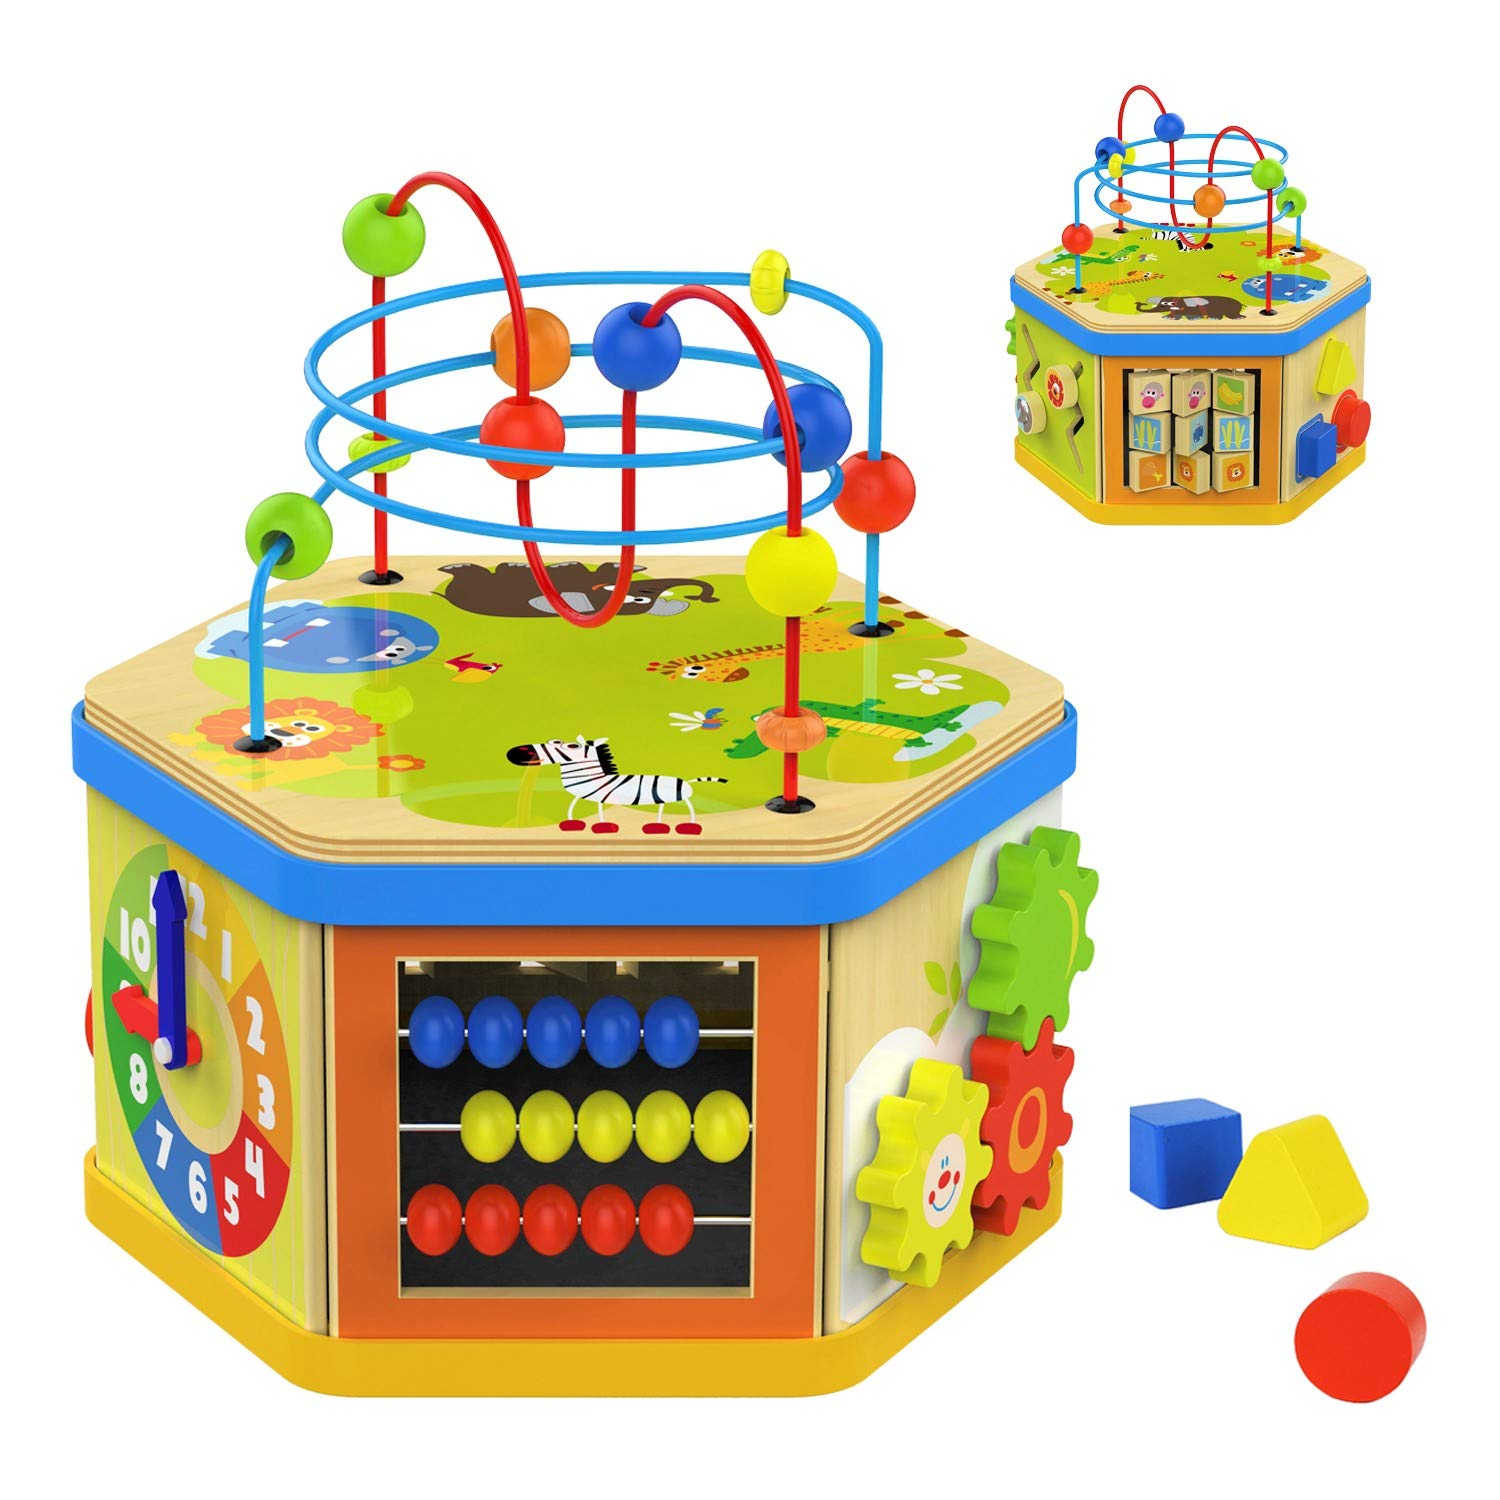 TOP BRIGHT Activity Cube